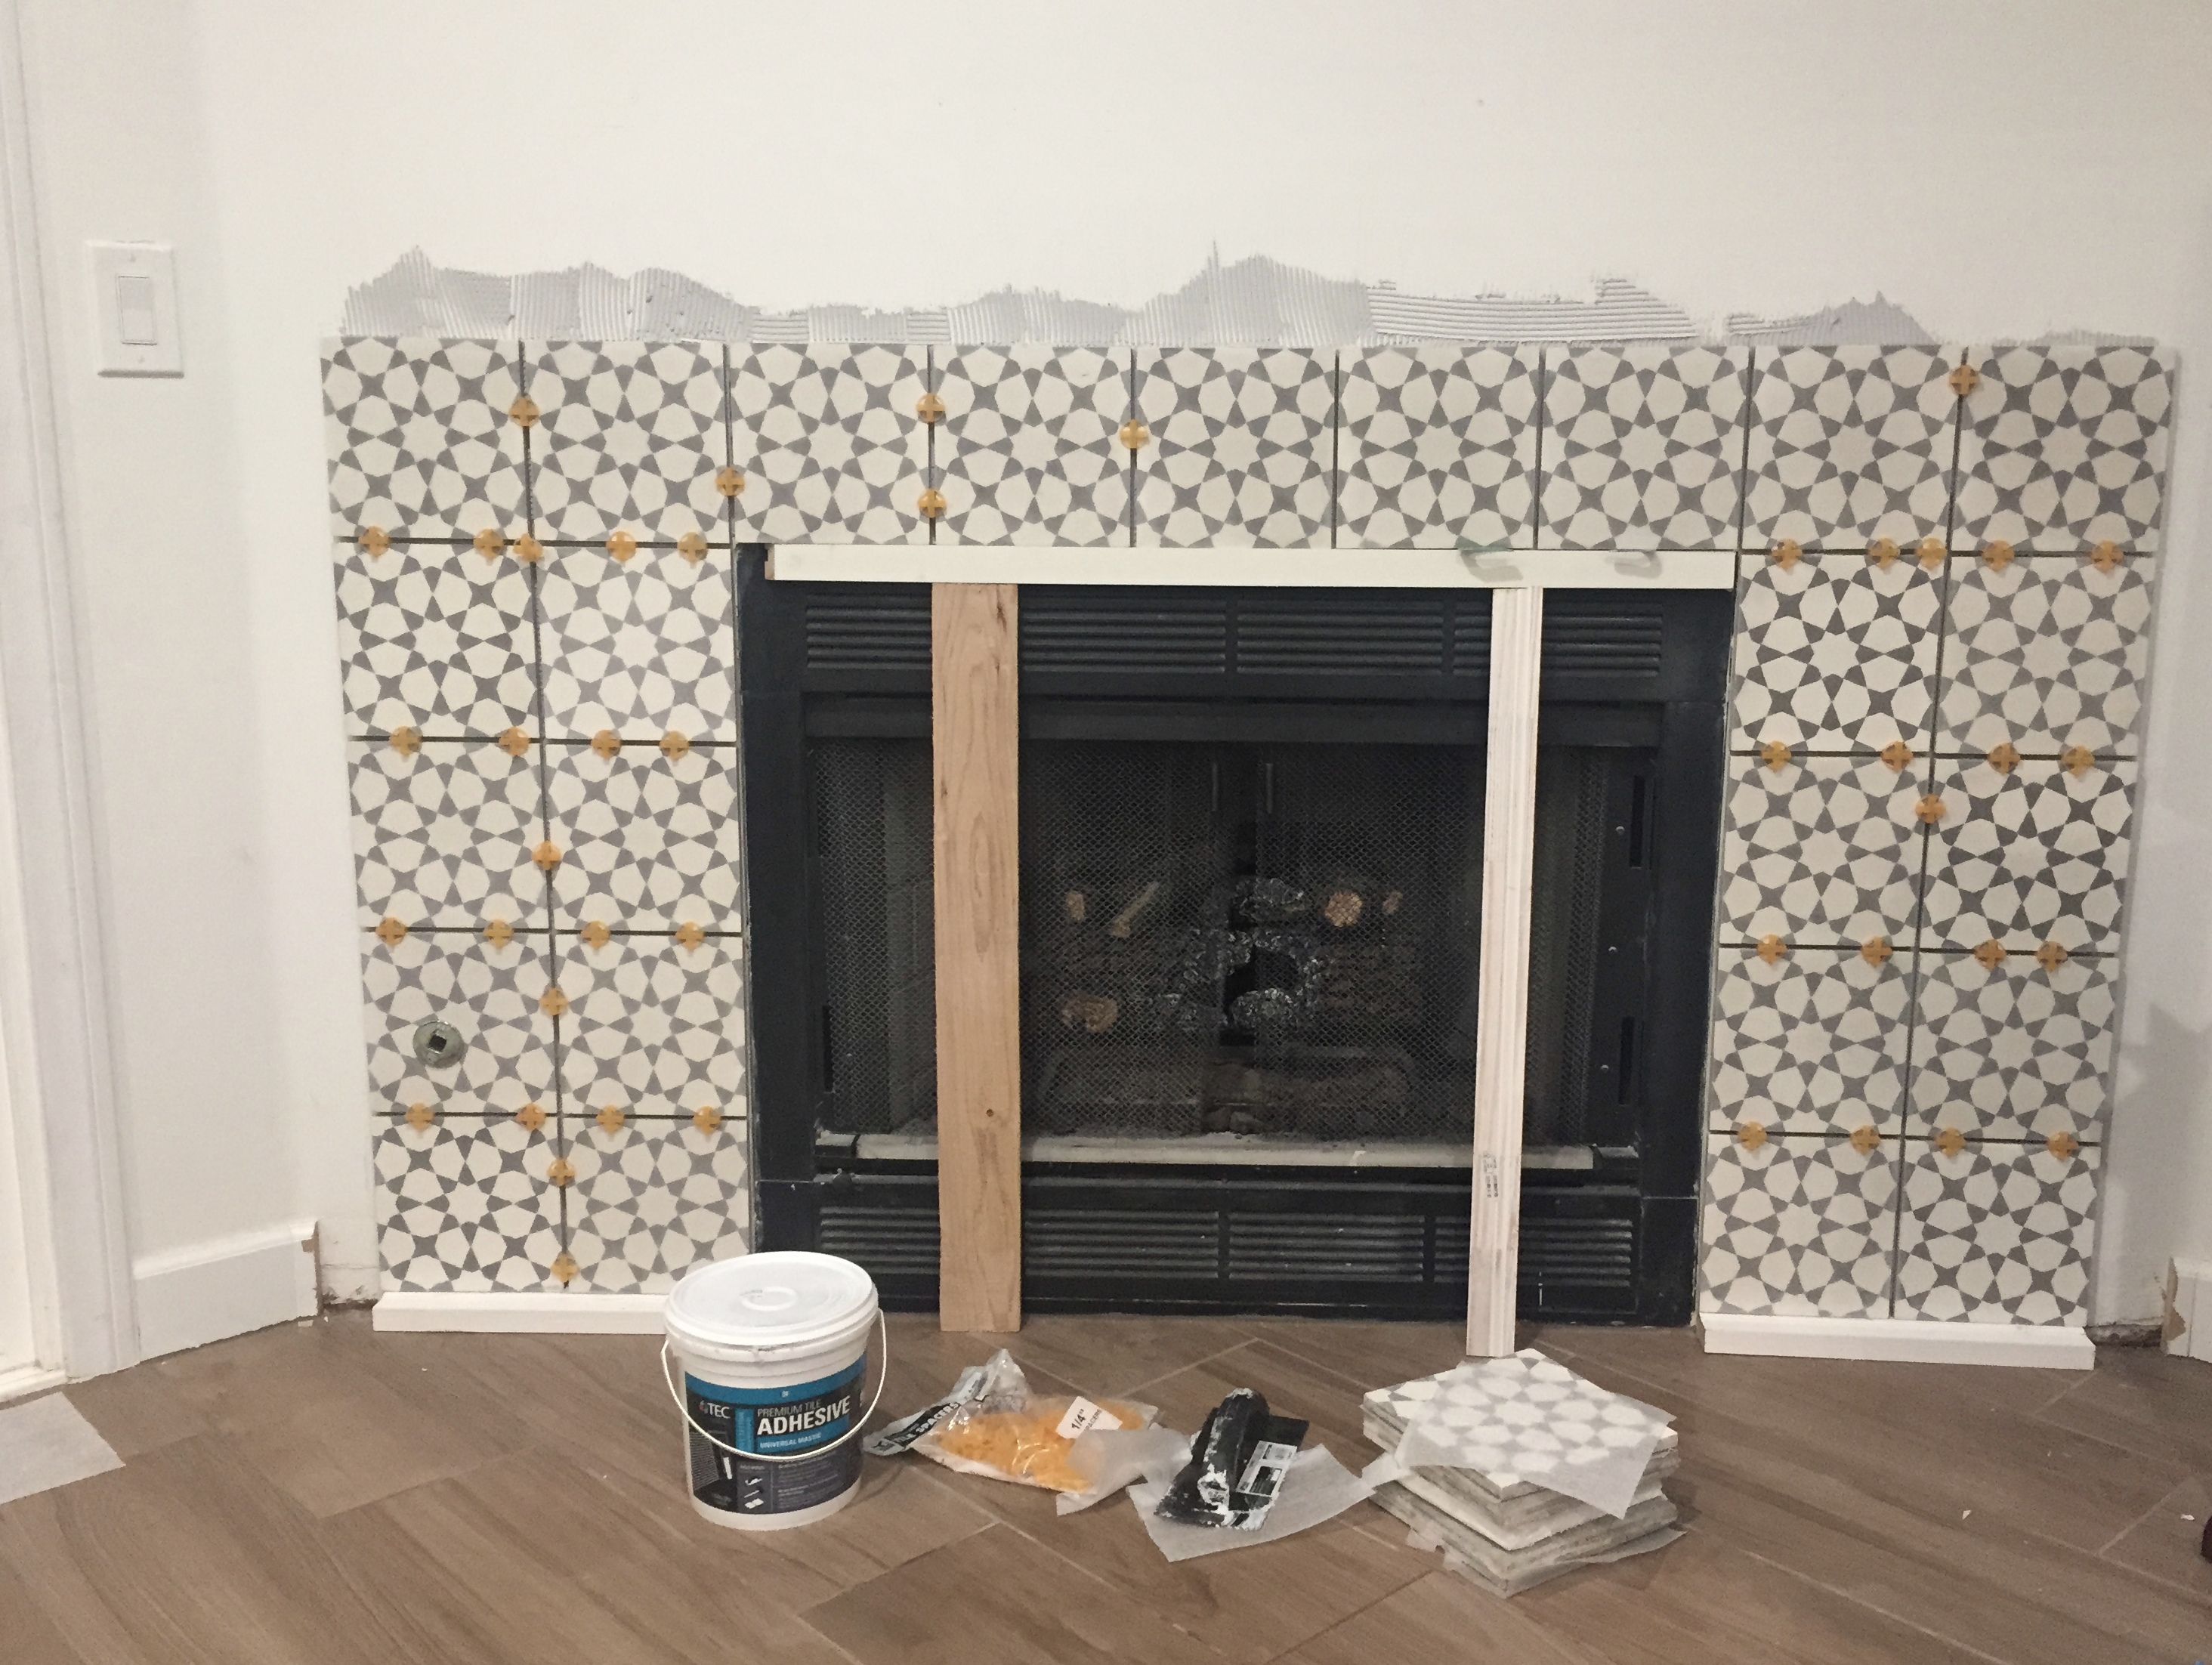 antique original the your restoration fireplaces or fire reading tiles and require for service home people restored on our then fireplace prefer call in an expert berkshire